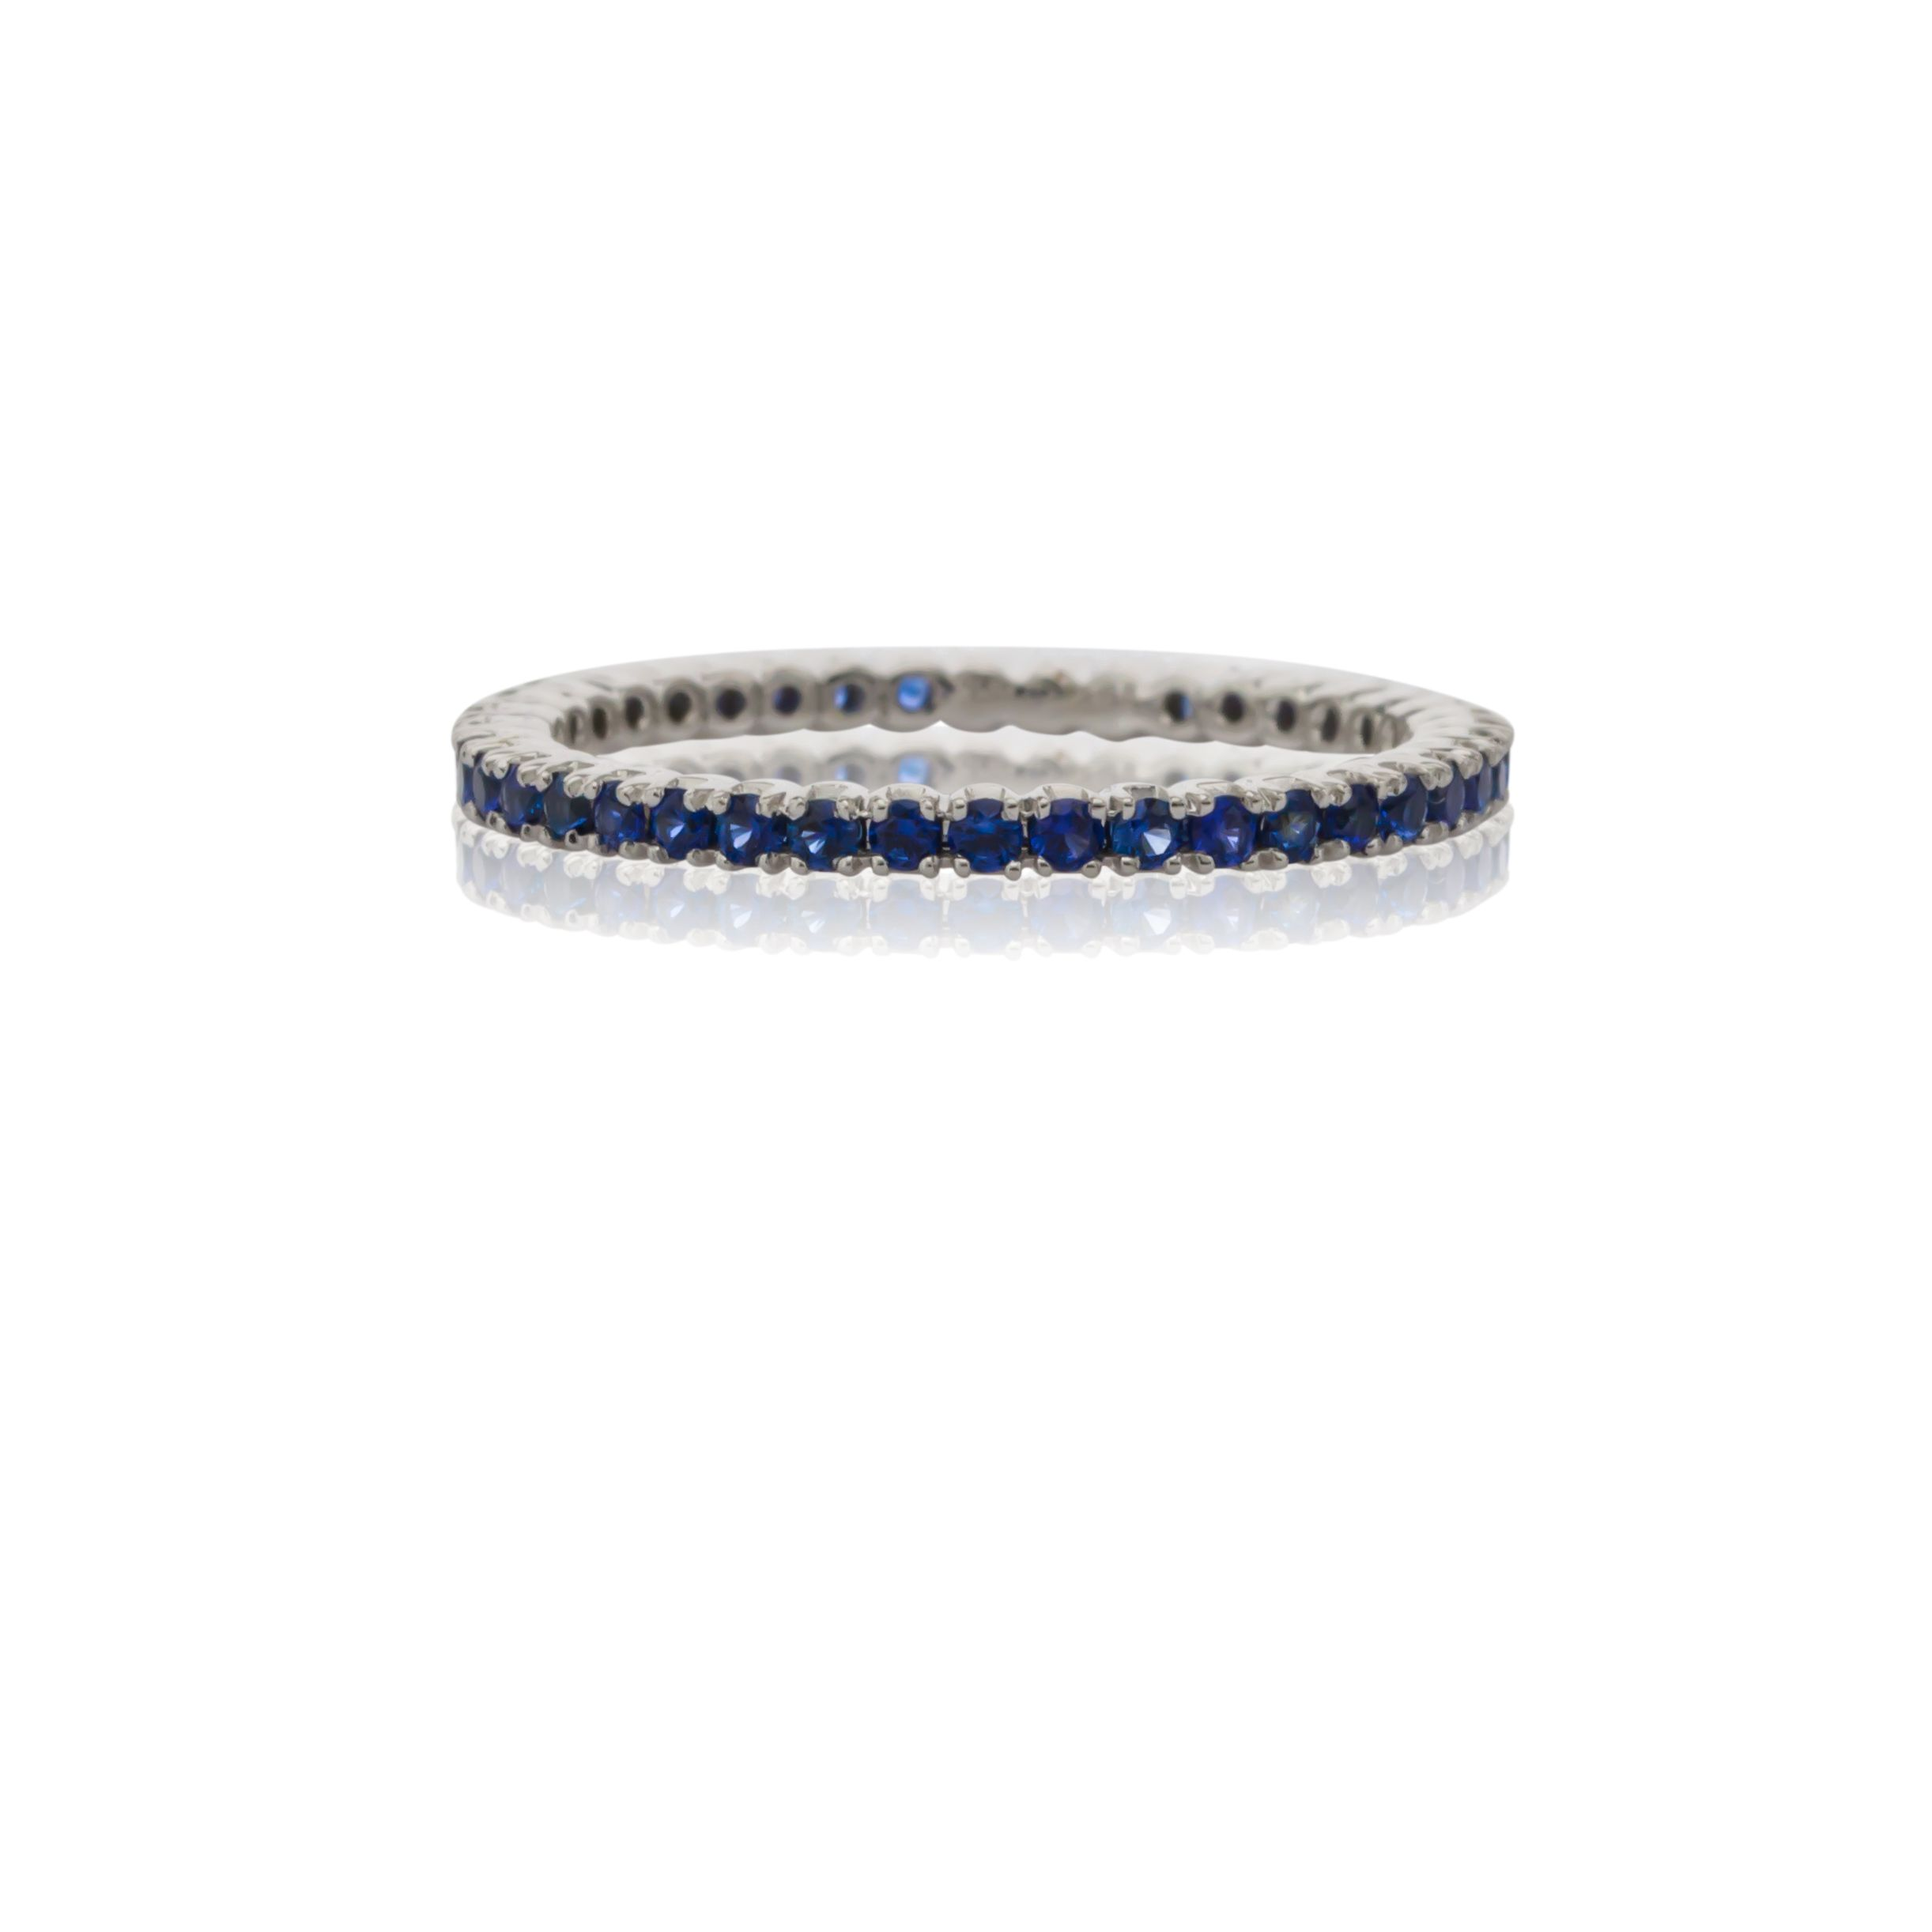 umba lola faceted eternity sapphire shop jewelry band brooks designers bands above august blue